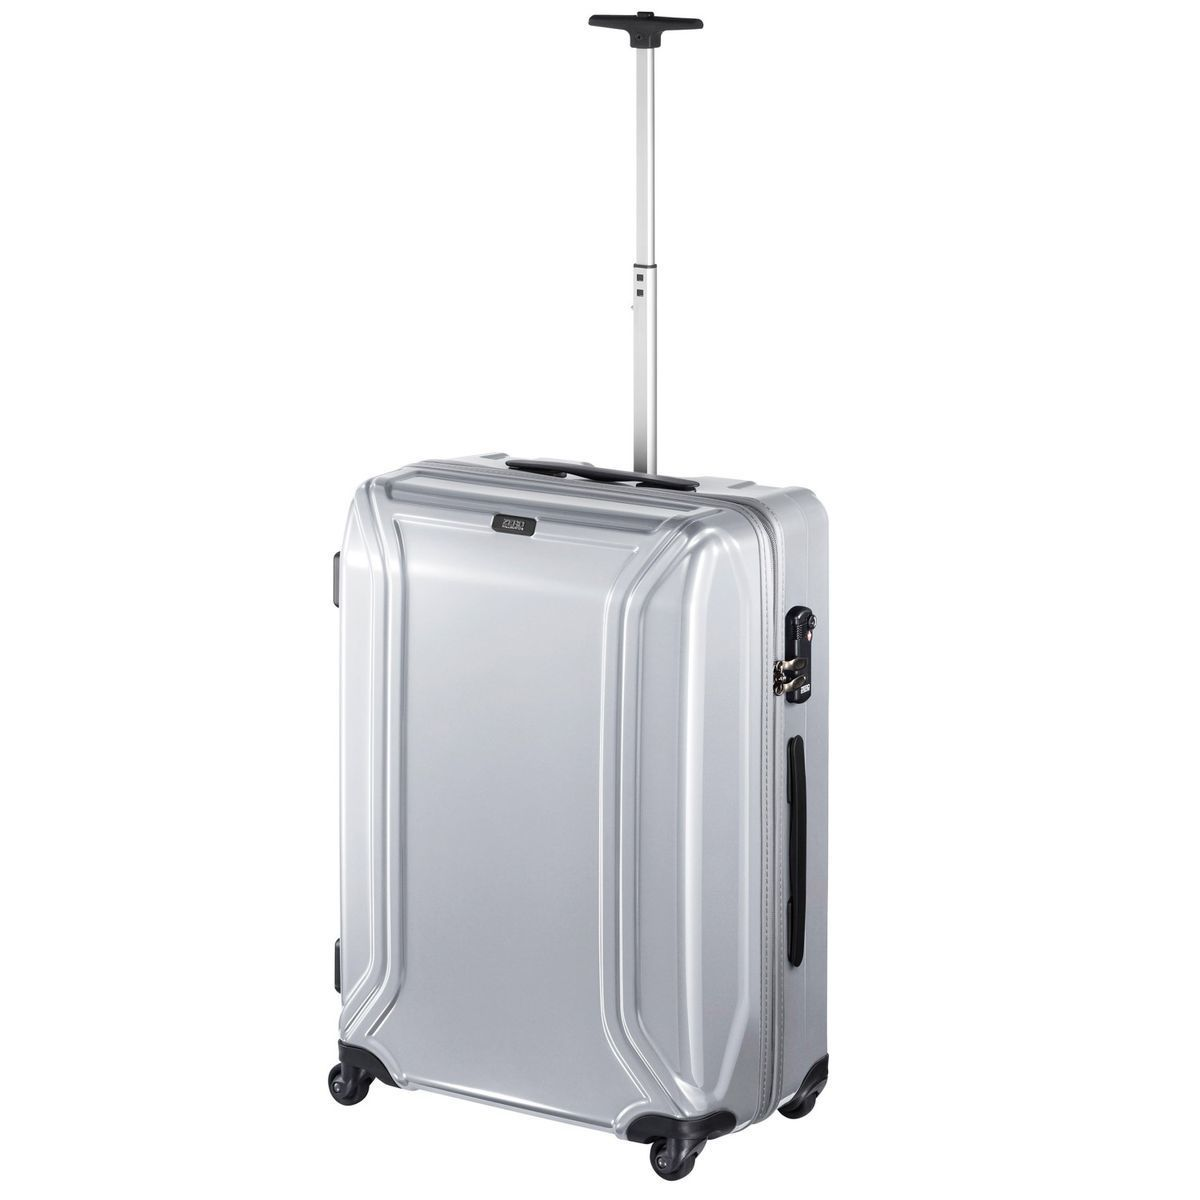 Zero Halliburton Zero Air II 4-Rollen Trolley 62 cm, silver coloured